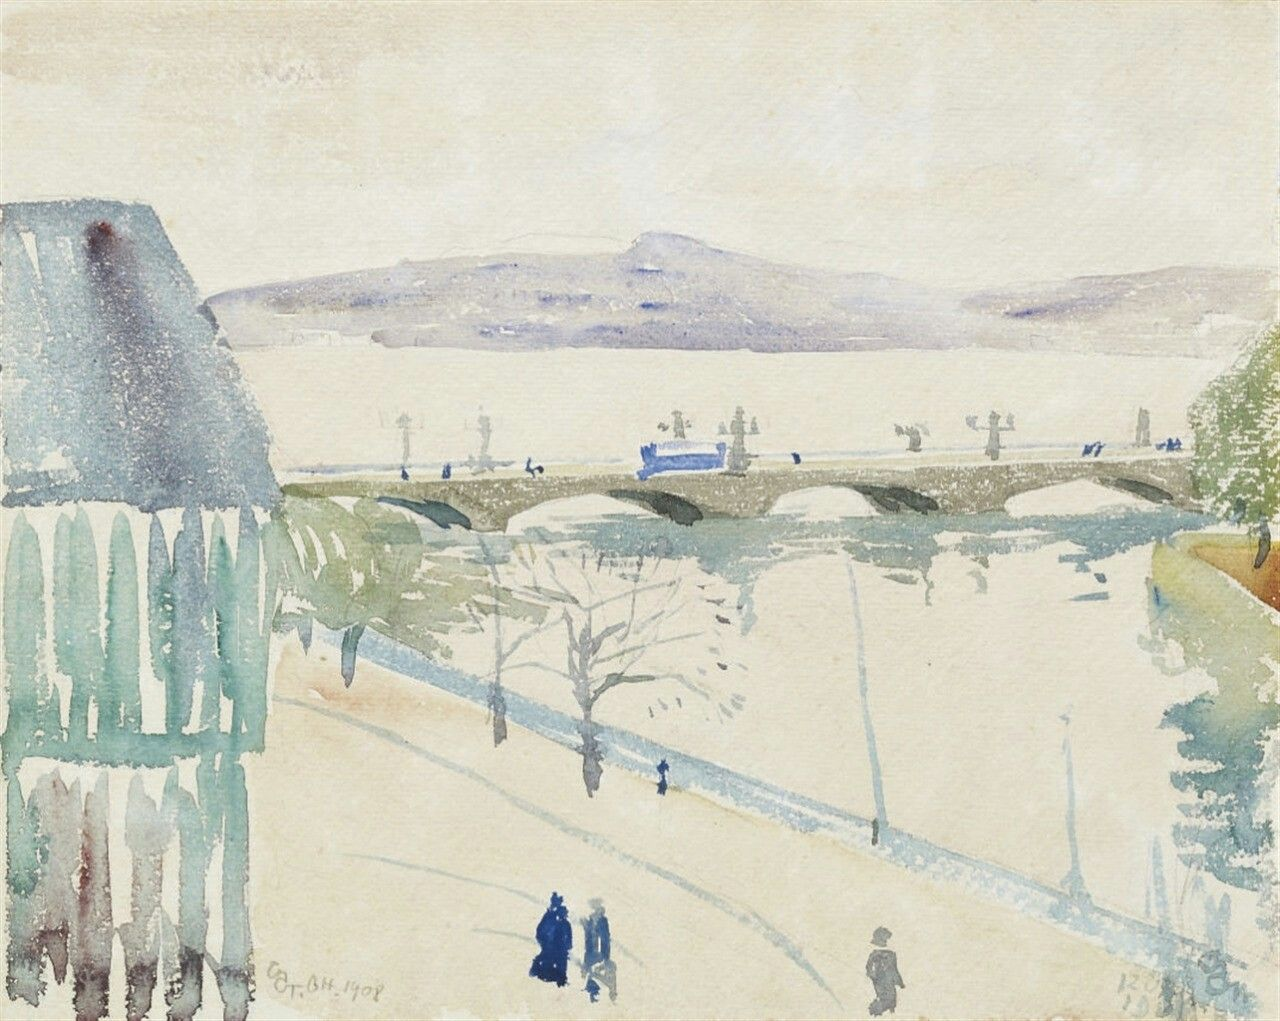 Giovanni Giacometti (Swiss, 1868-1933), Vue de Genève [View of Geneva], 1908. Watercolour on paper, 23 x 29 cm.